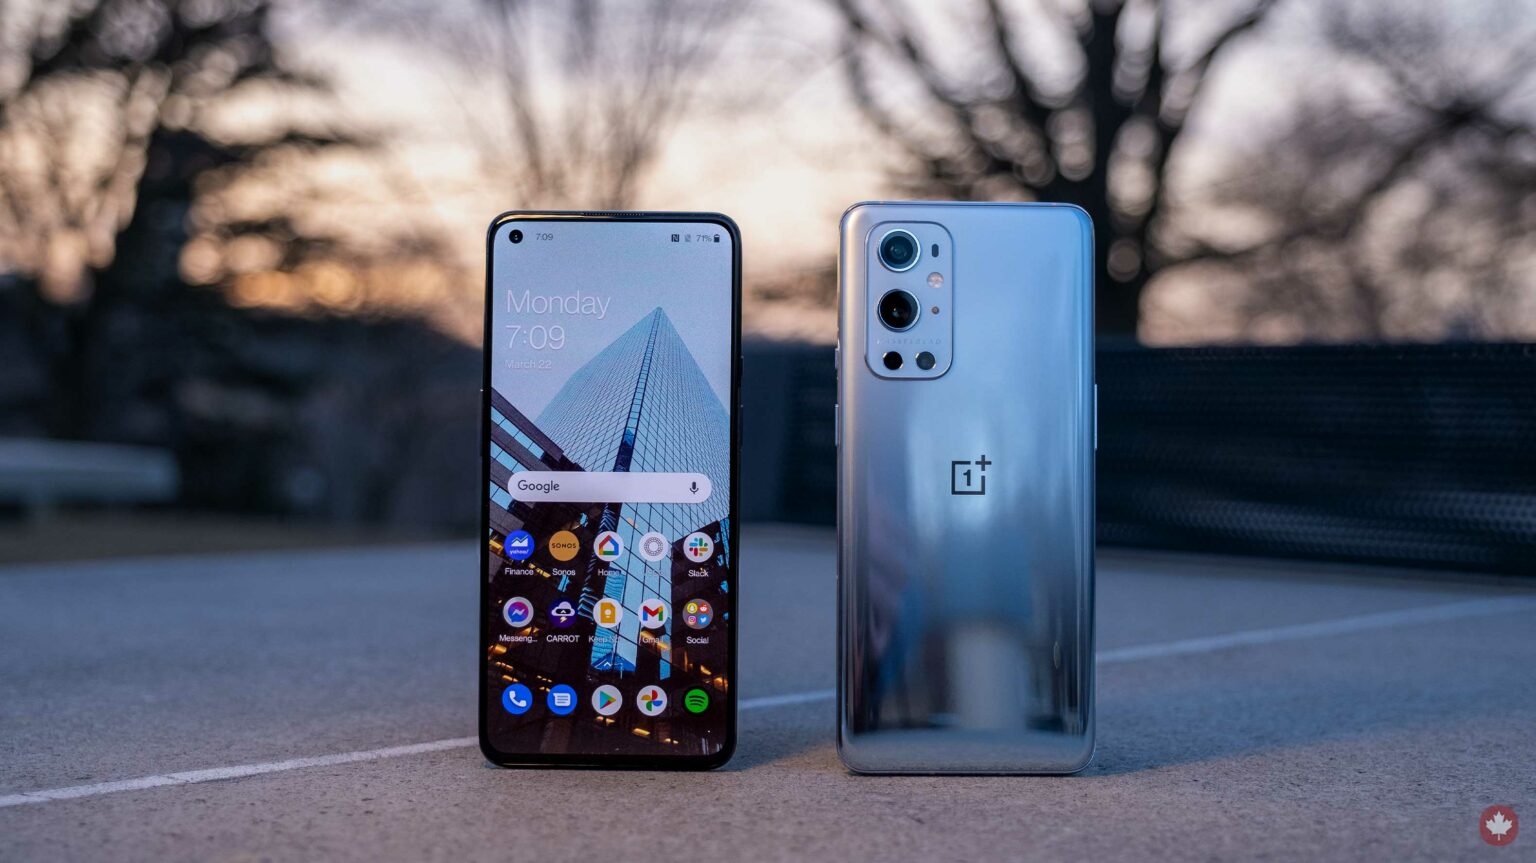 5G Mobile: Upcoming 5G Phones That You Should Definitely Buy